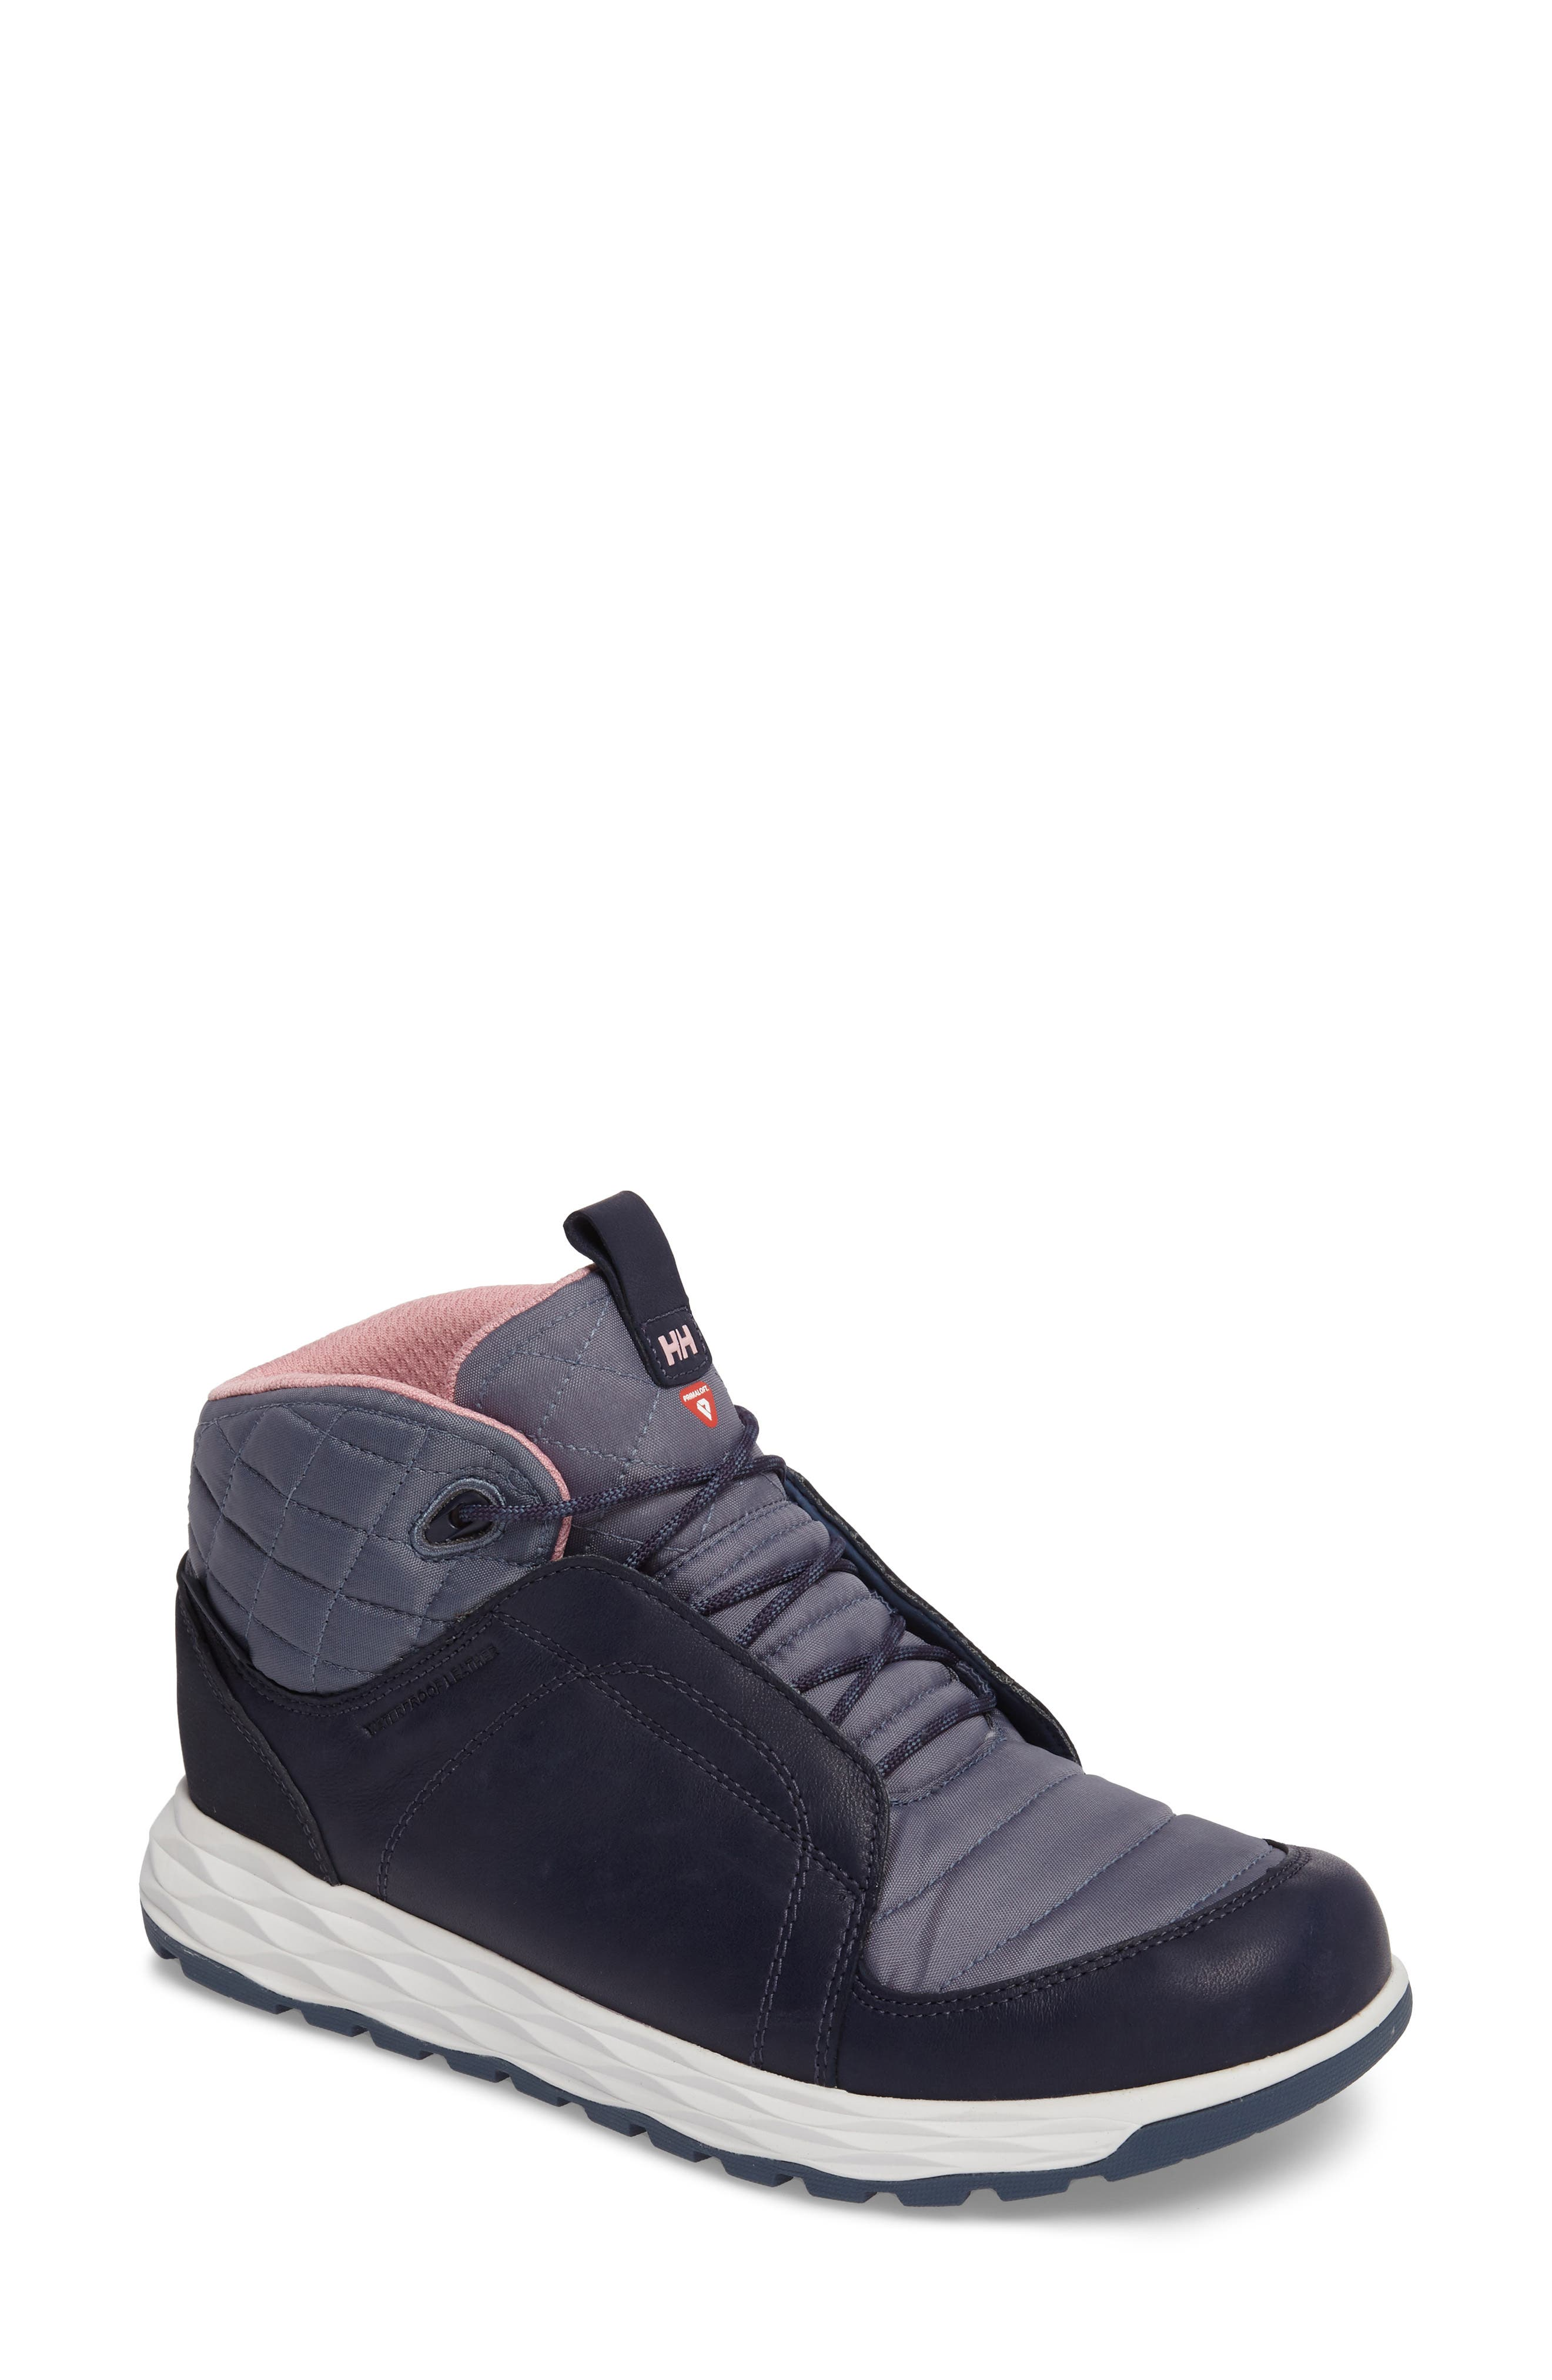 Alternate Image 1 Selected - Helly Hansen Ten Below Waterproof High Top Sneaker (Women)